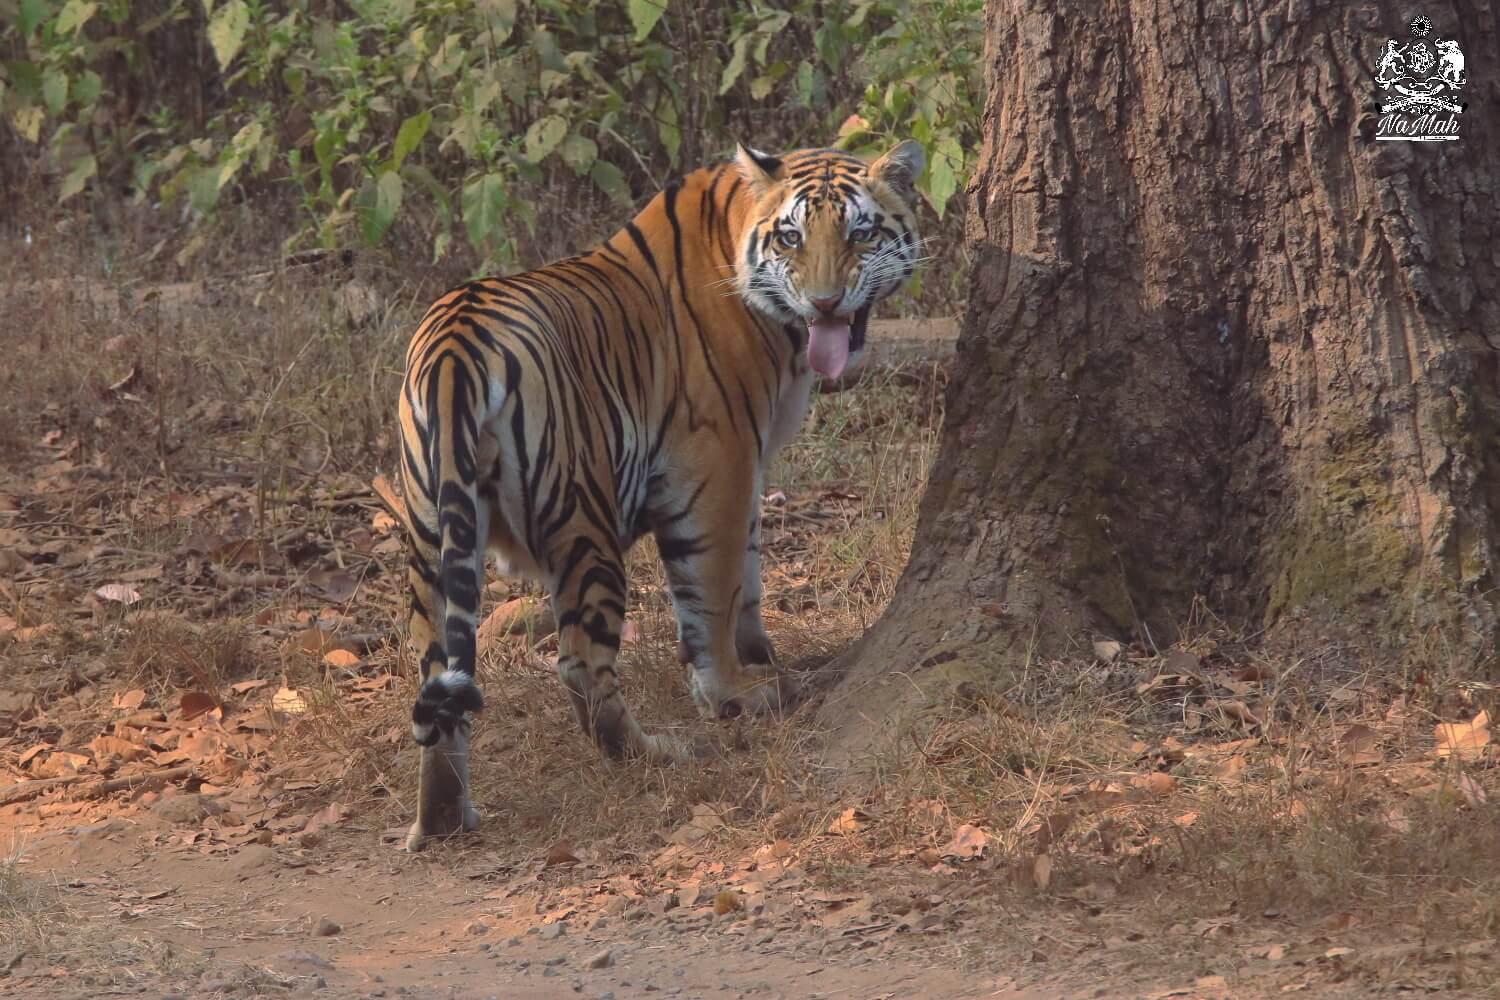 Tiger making flehman expression after sniffing on tree